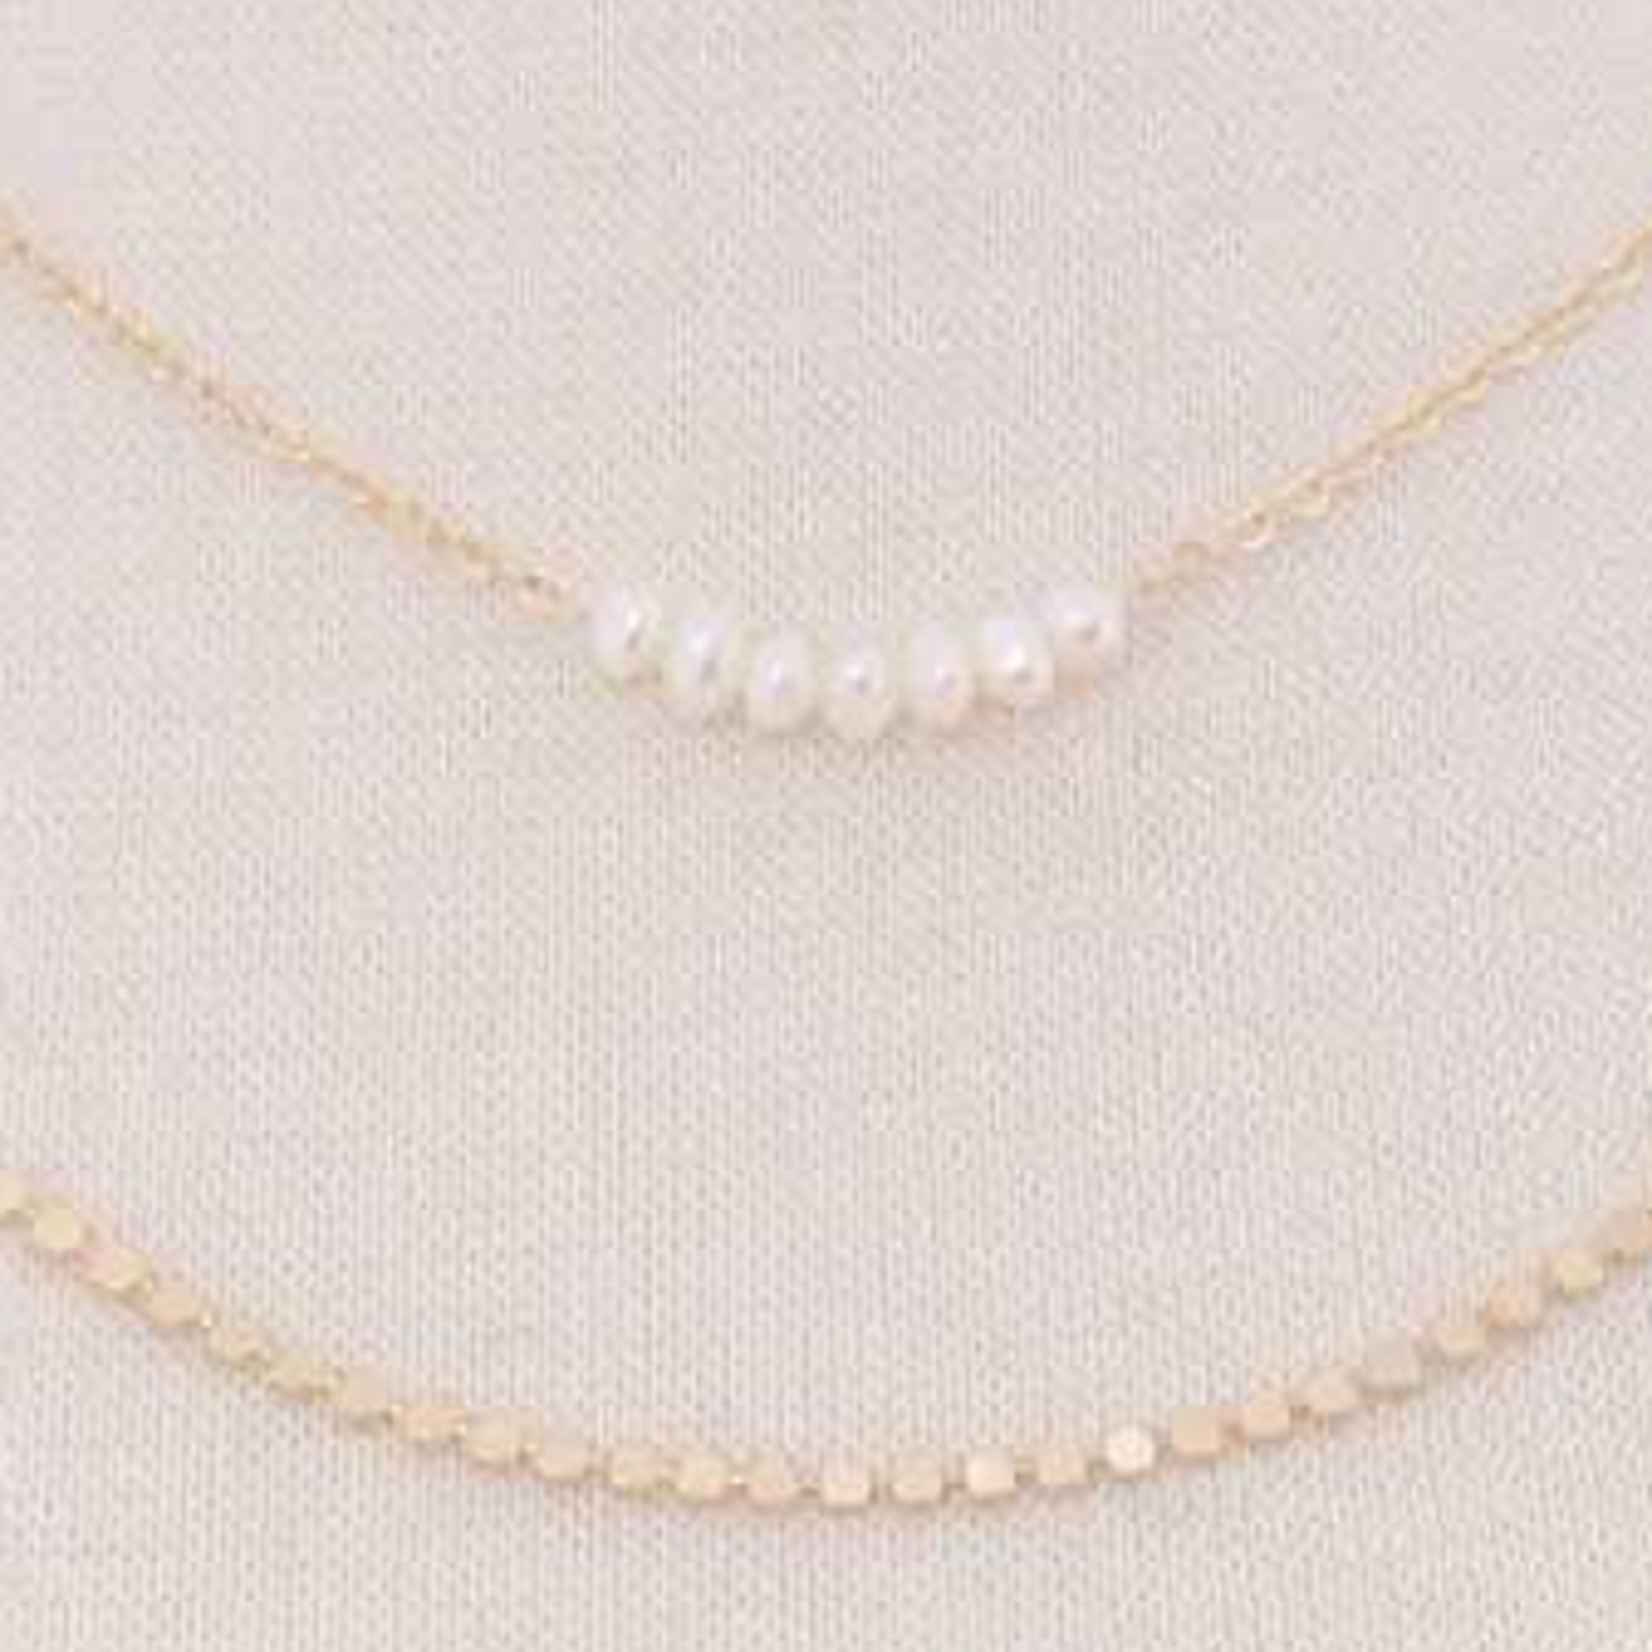 Joia Pearly Necklace